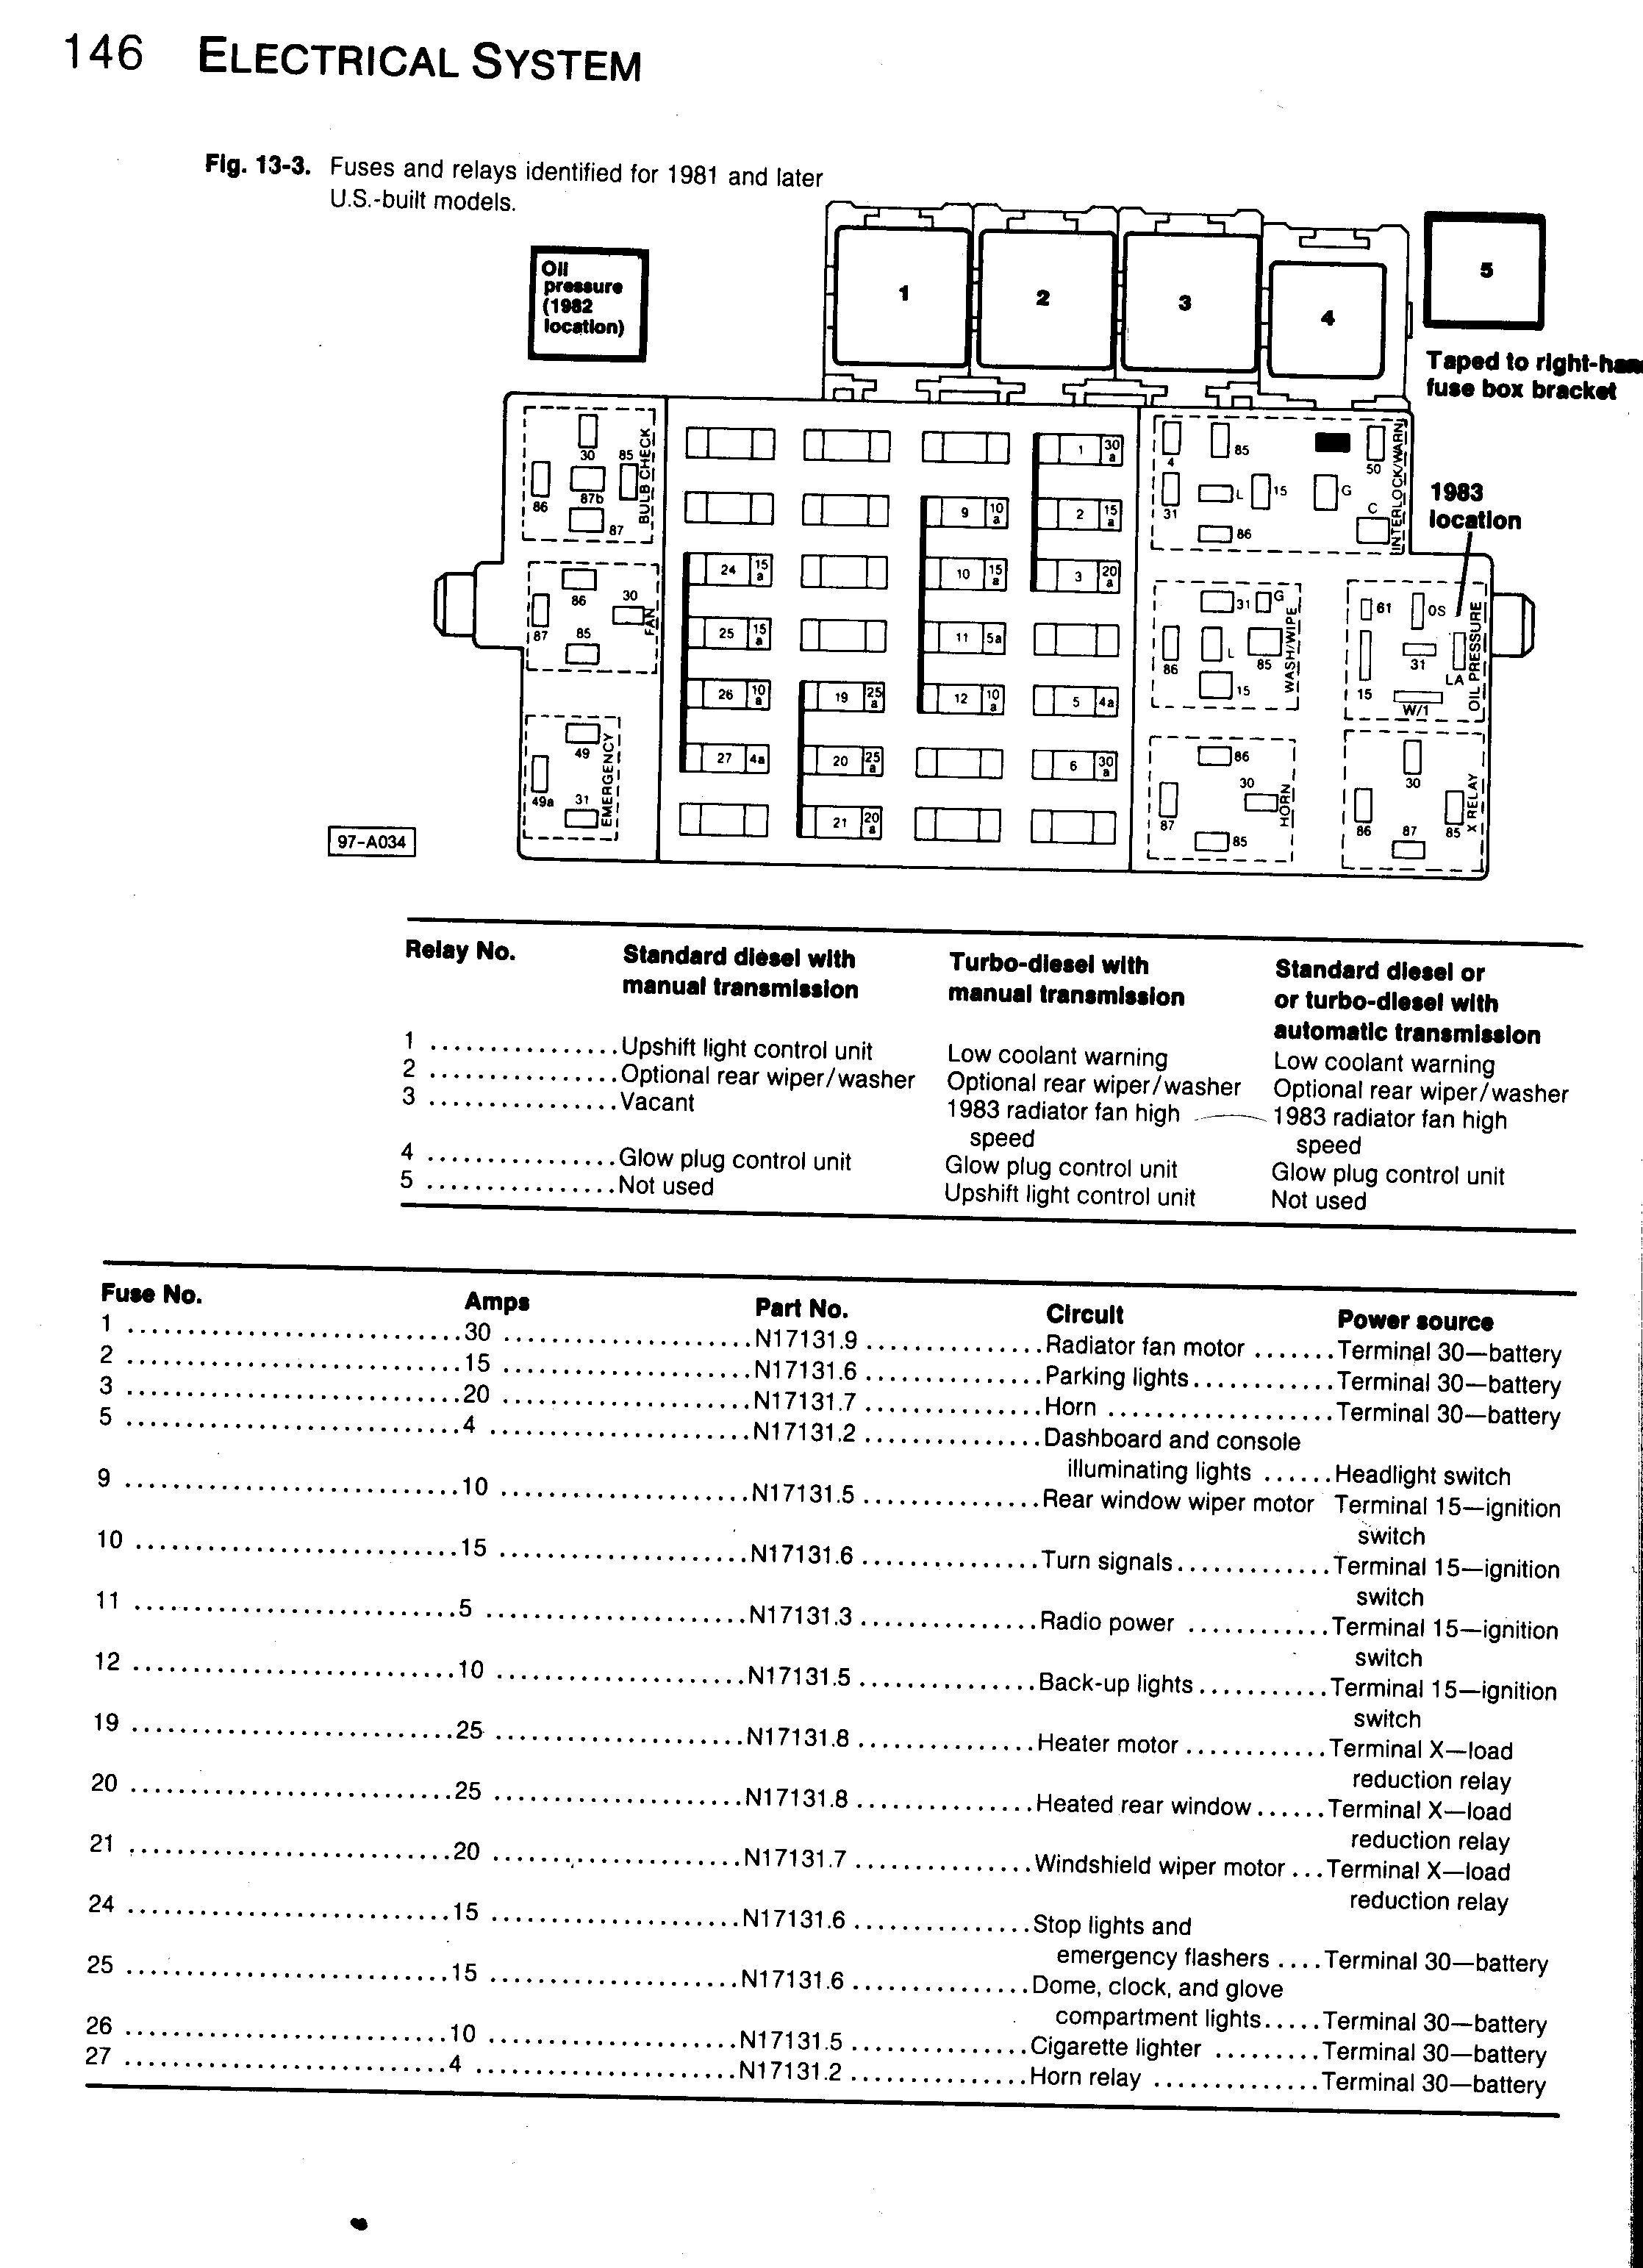 1992 pontiac grand am fuse box diagram Images Gallery